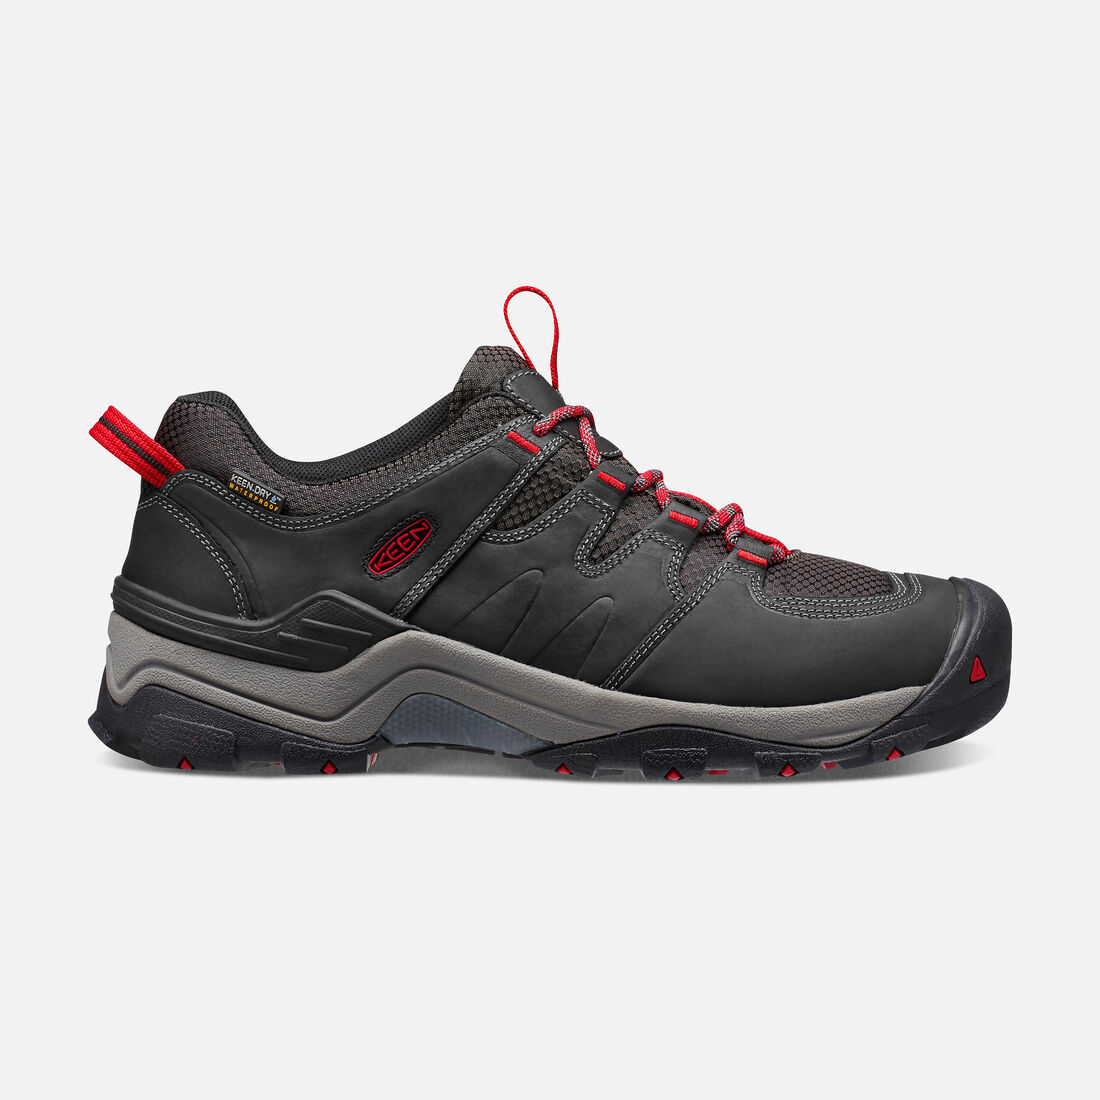 MEN'S GYPSUM II WATERPROOF  HIKING SHOES in Black/Tango - large view.